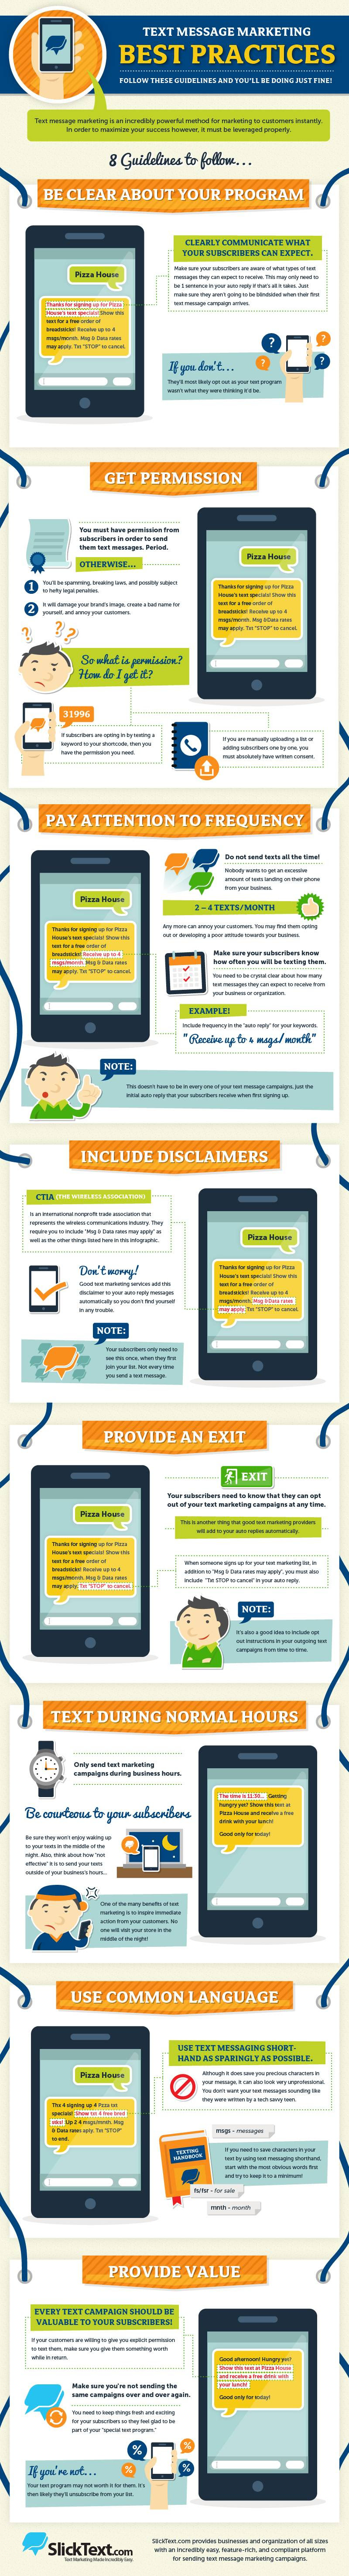 Infographic: Text Message Marketing Best Practices